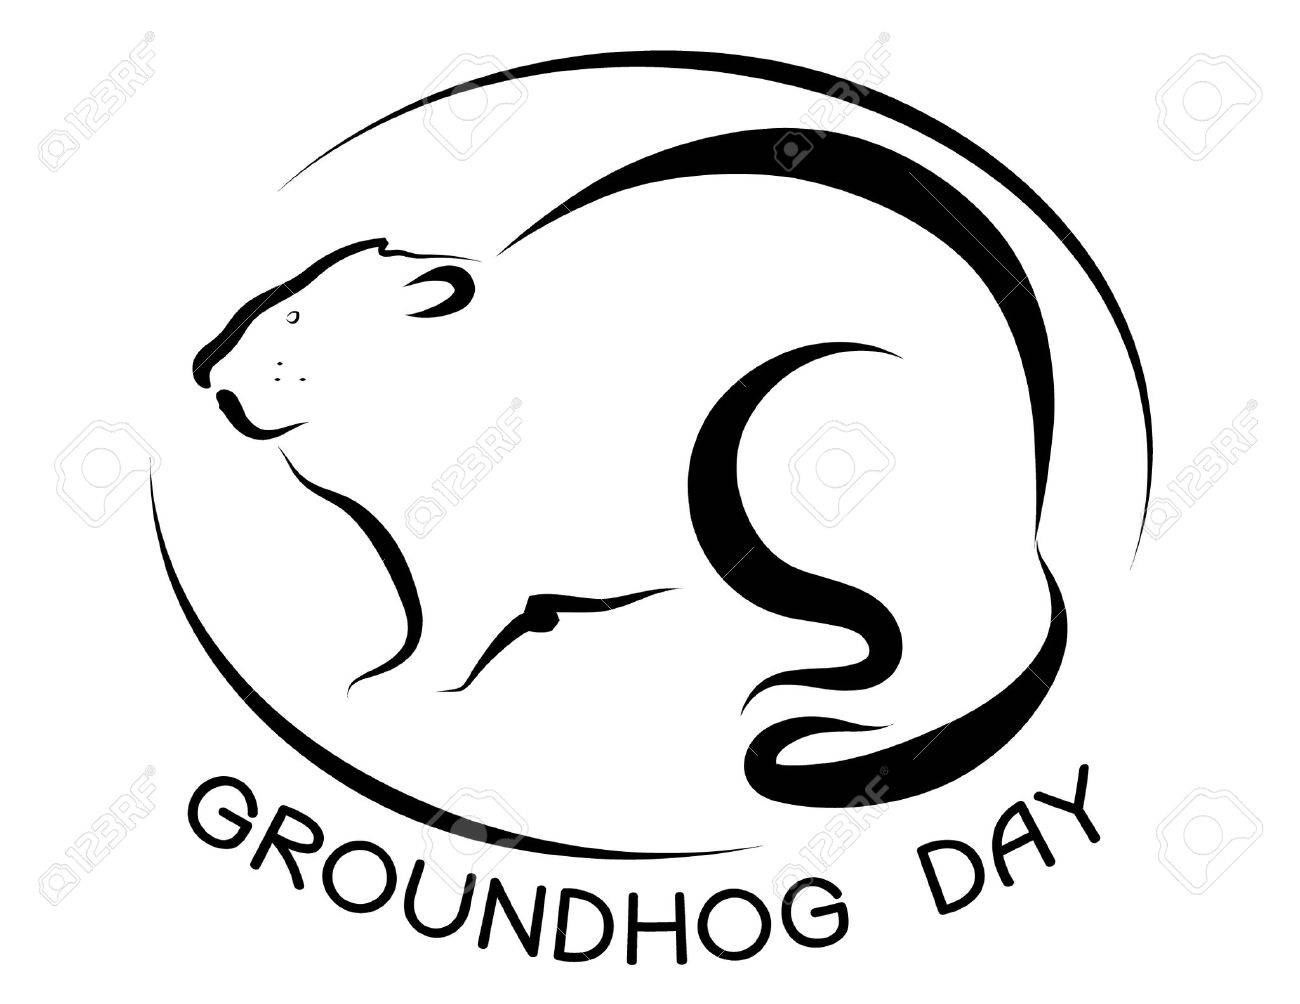 118 ground hog cliparts stock vector and royalty free ground hog